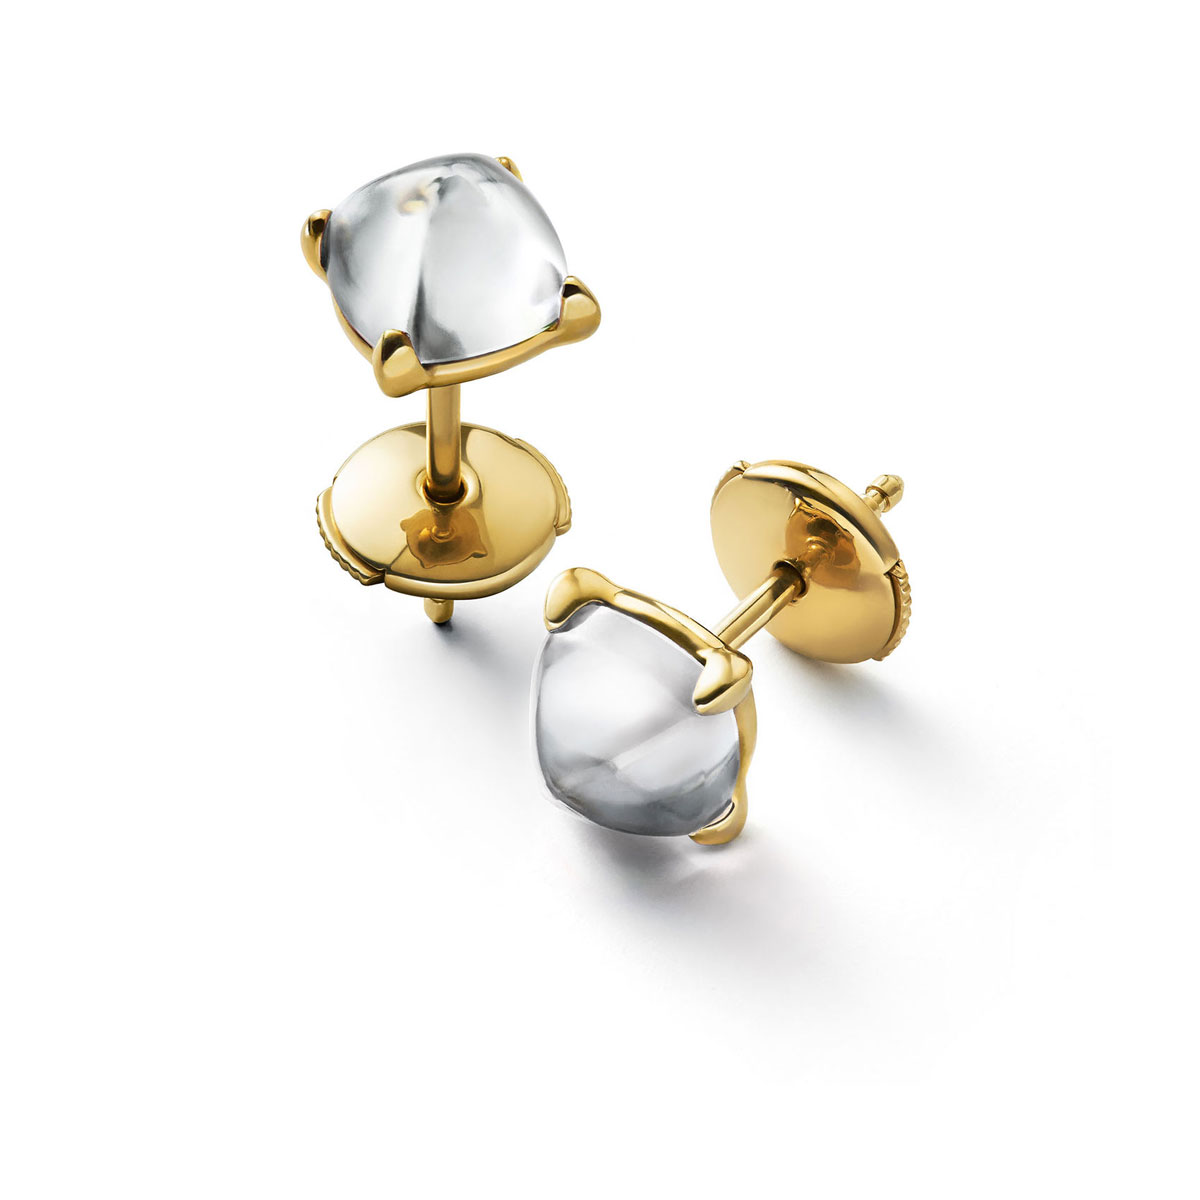 Baccarat Crystal Medicis Mini Stud Earrings Vermeil Gold Clear